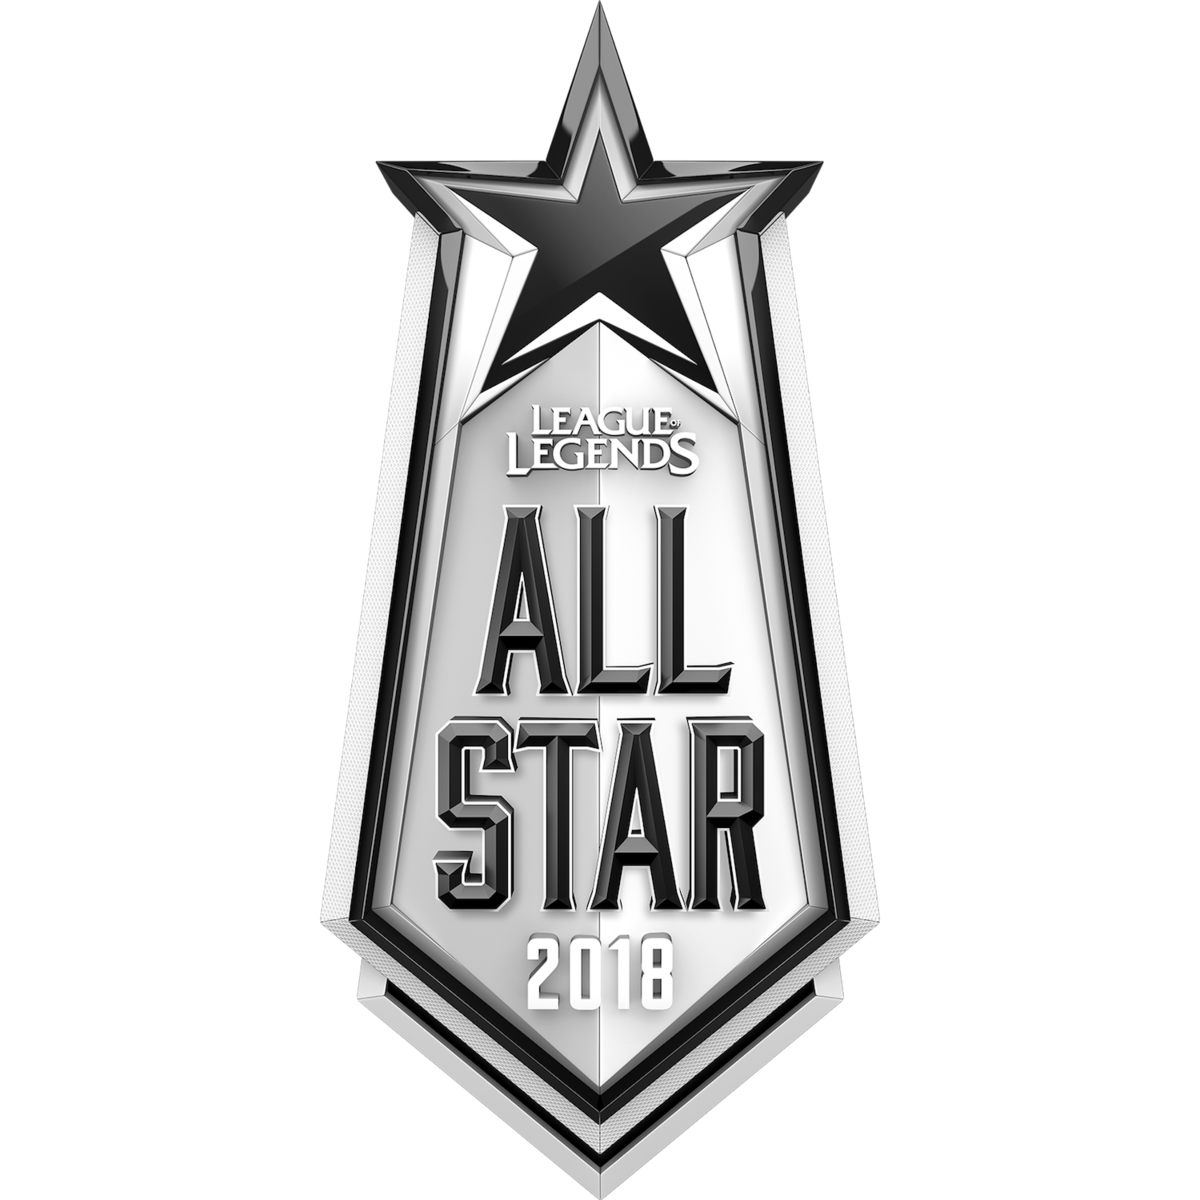 League of Legends All Star 2018